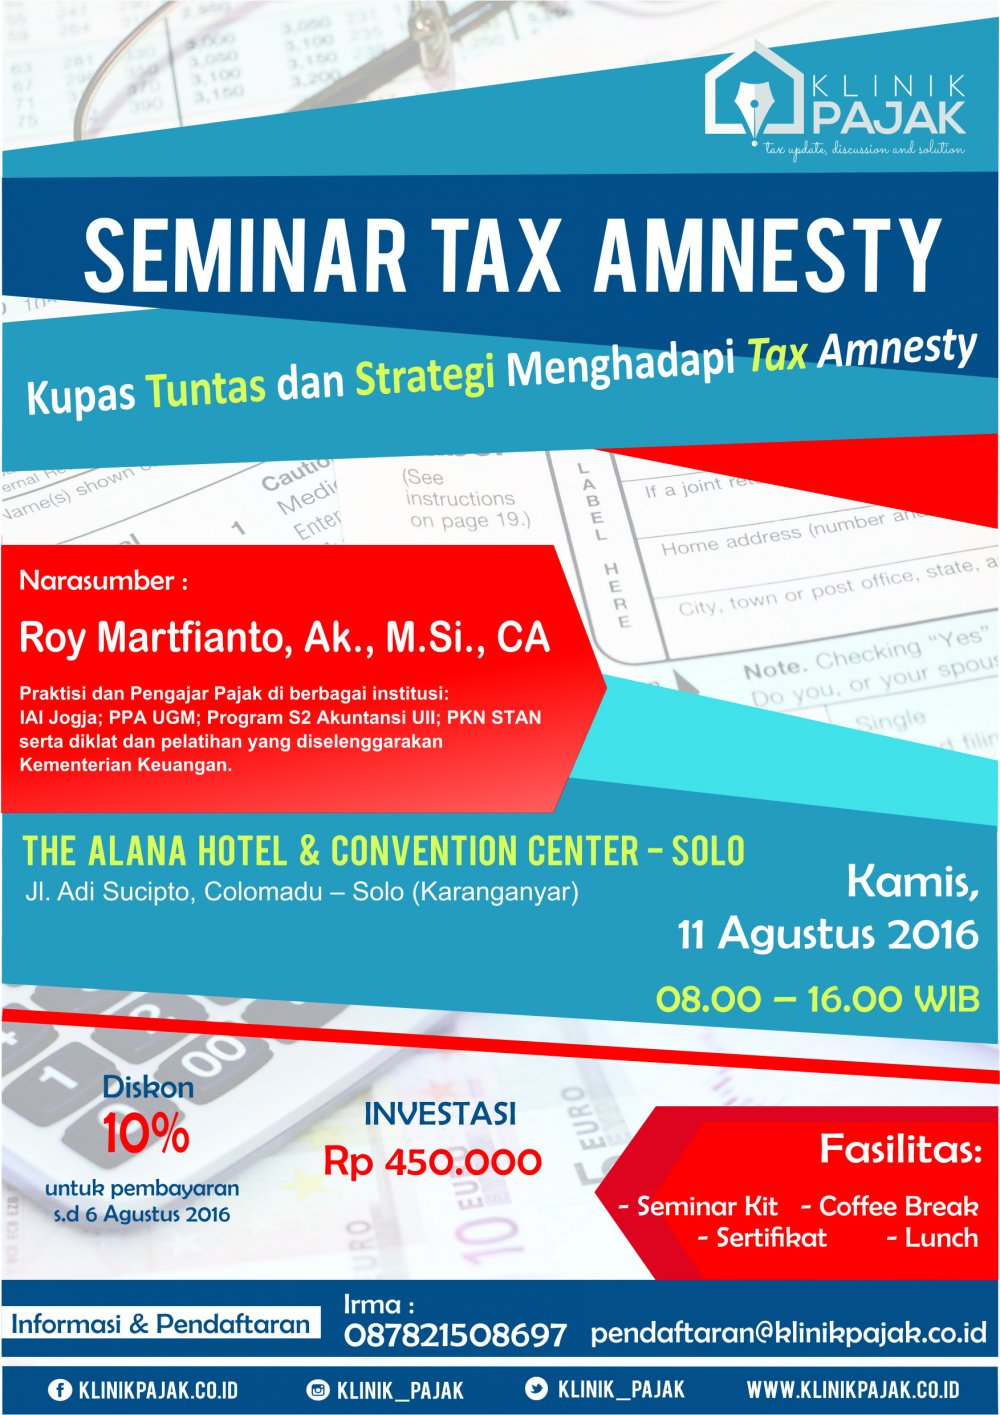 Seminar Tax Amnesty Solo